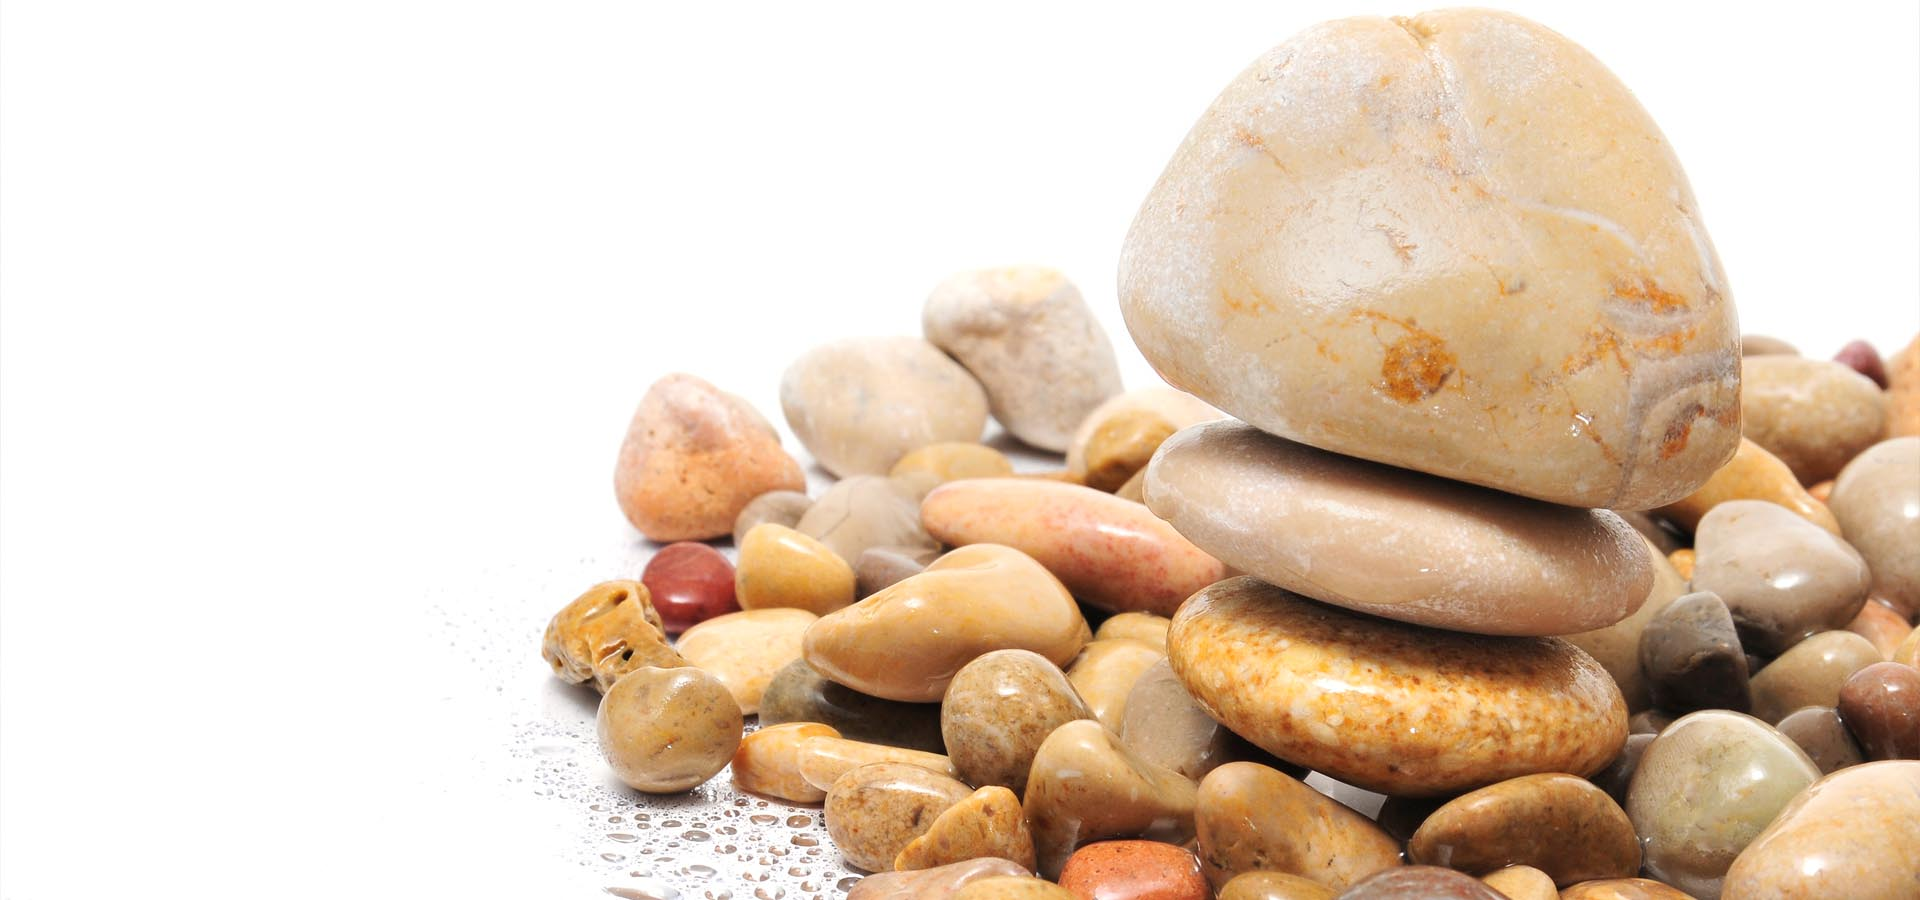 Five large pebbles that are perfect for your garden